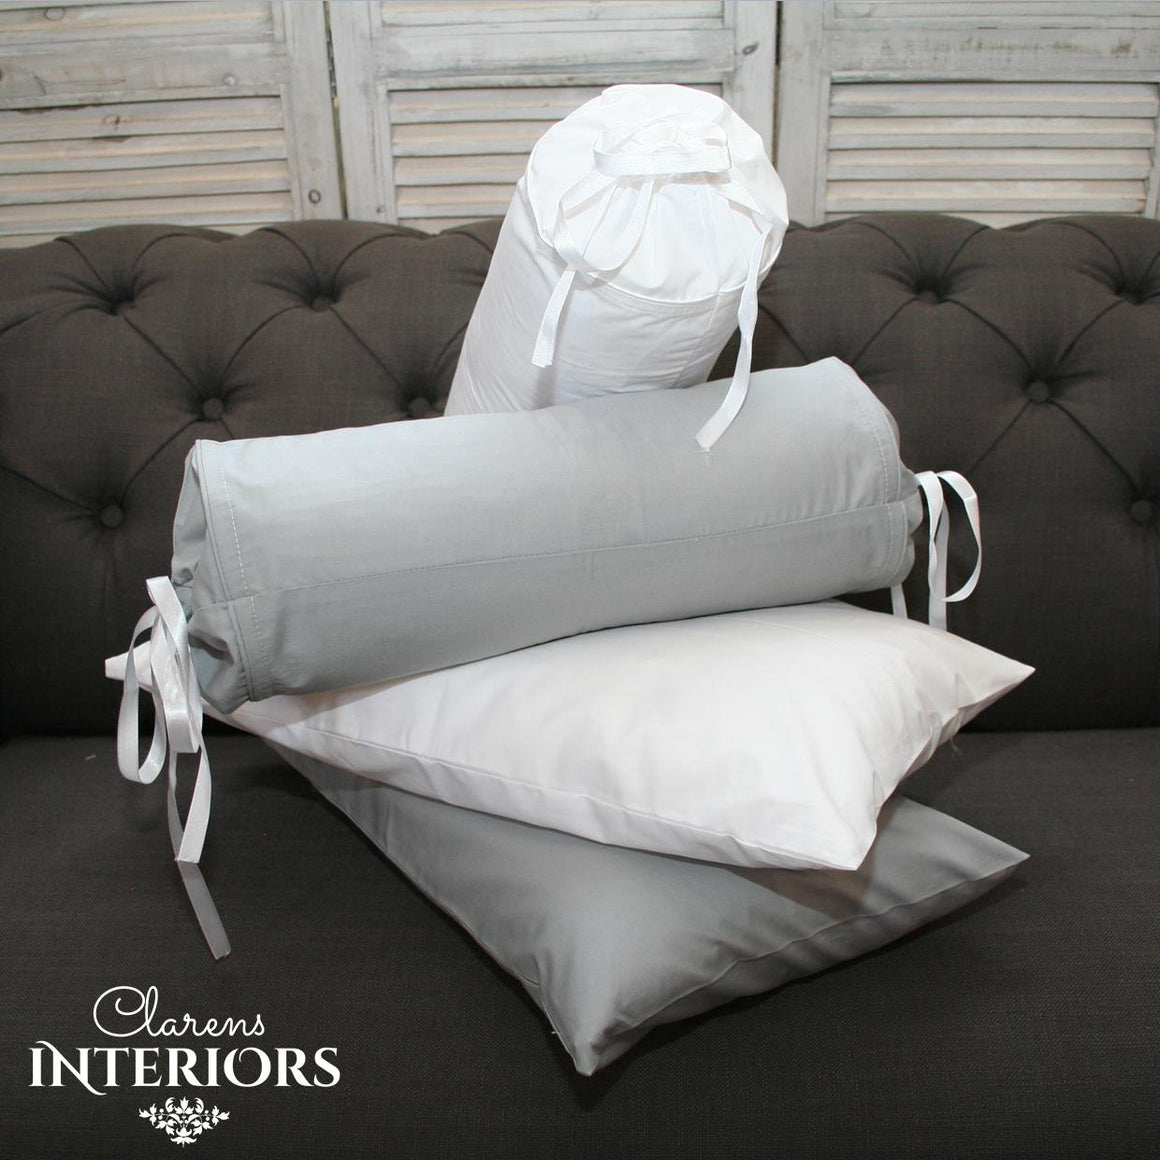 Neckroll & Travel Pillowcases